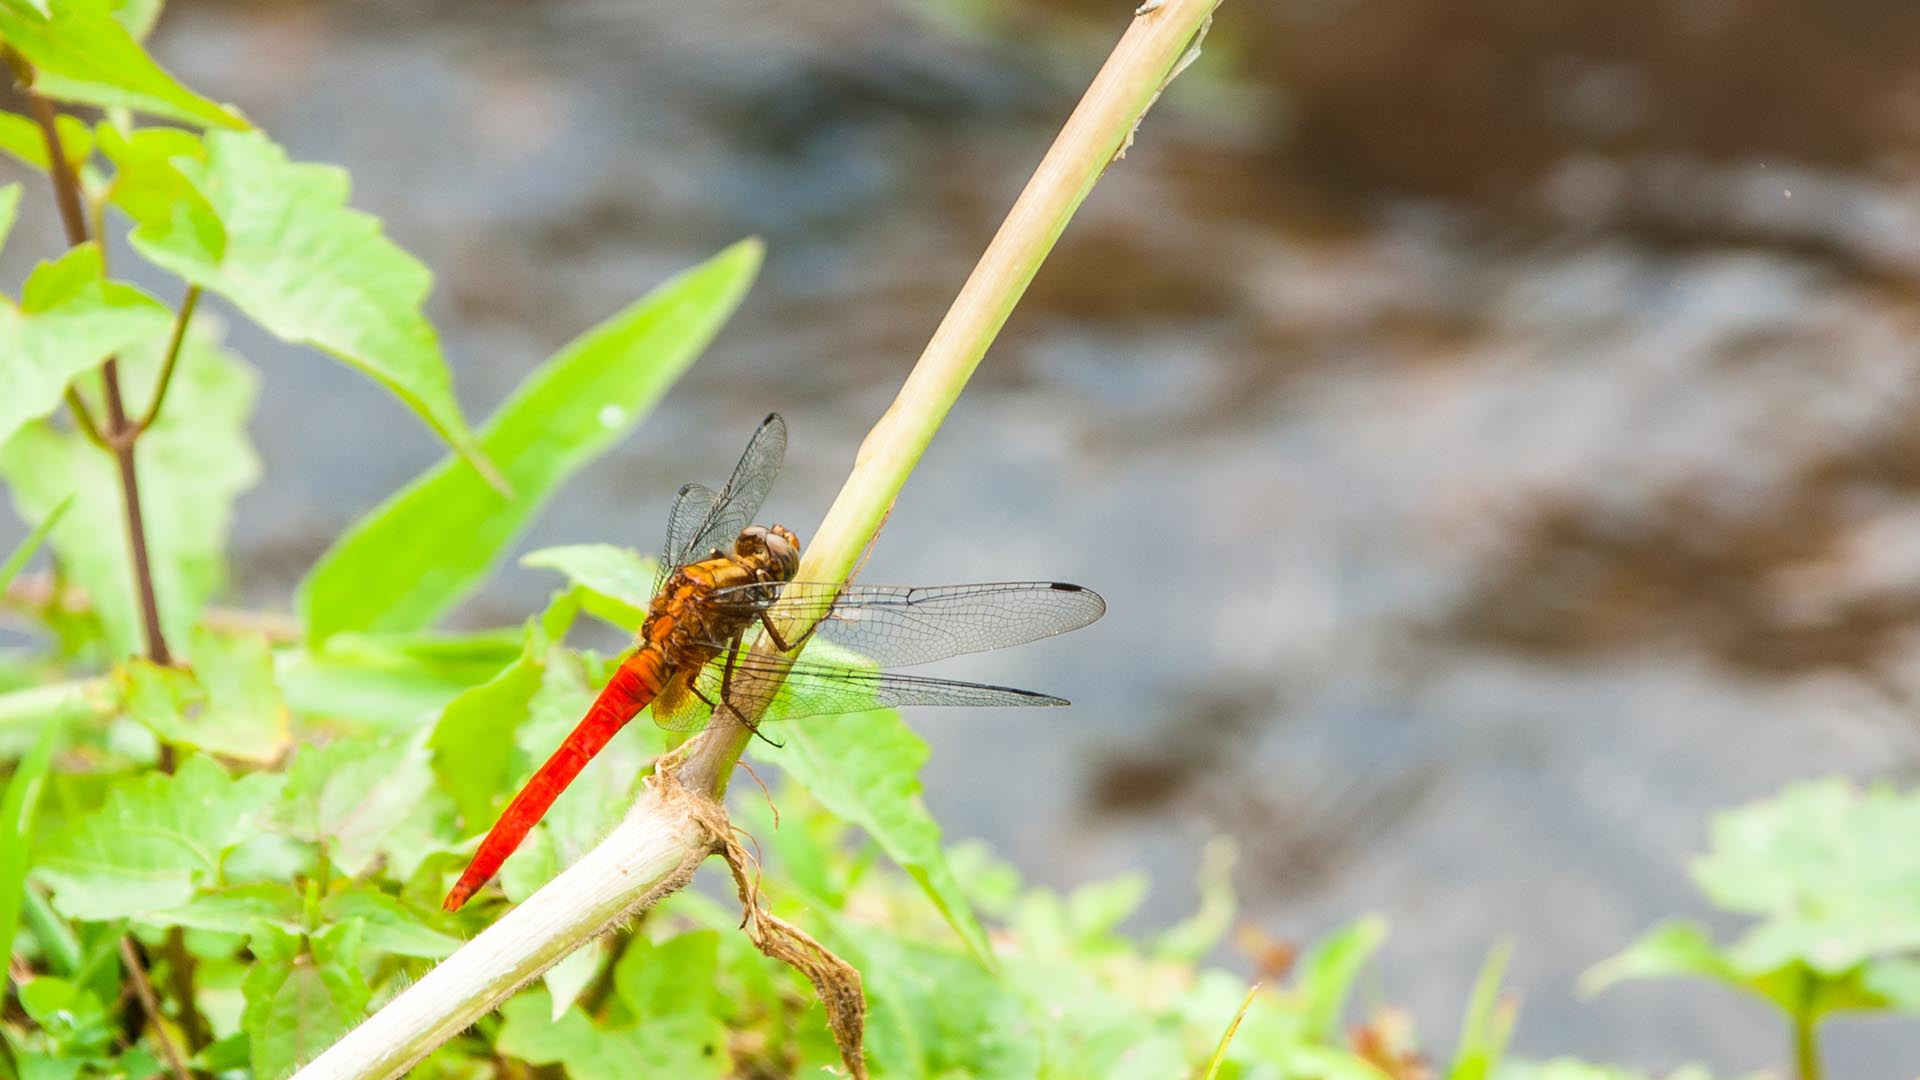 Dragonfly approach